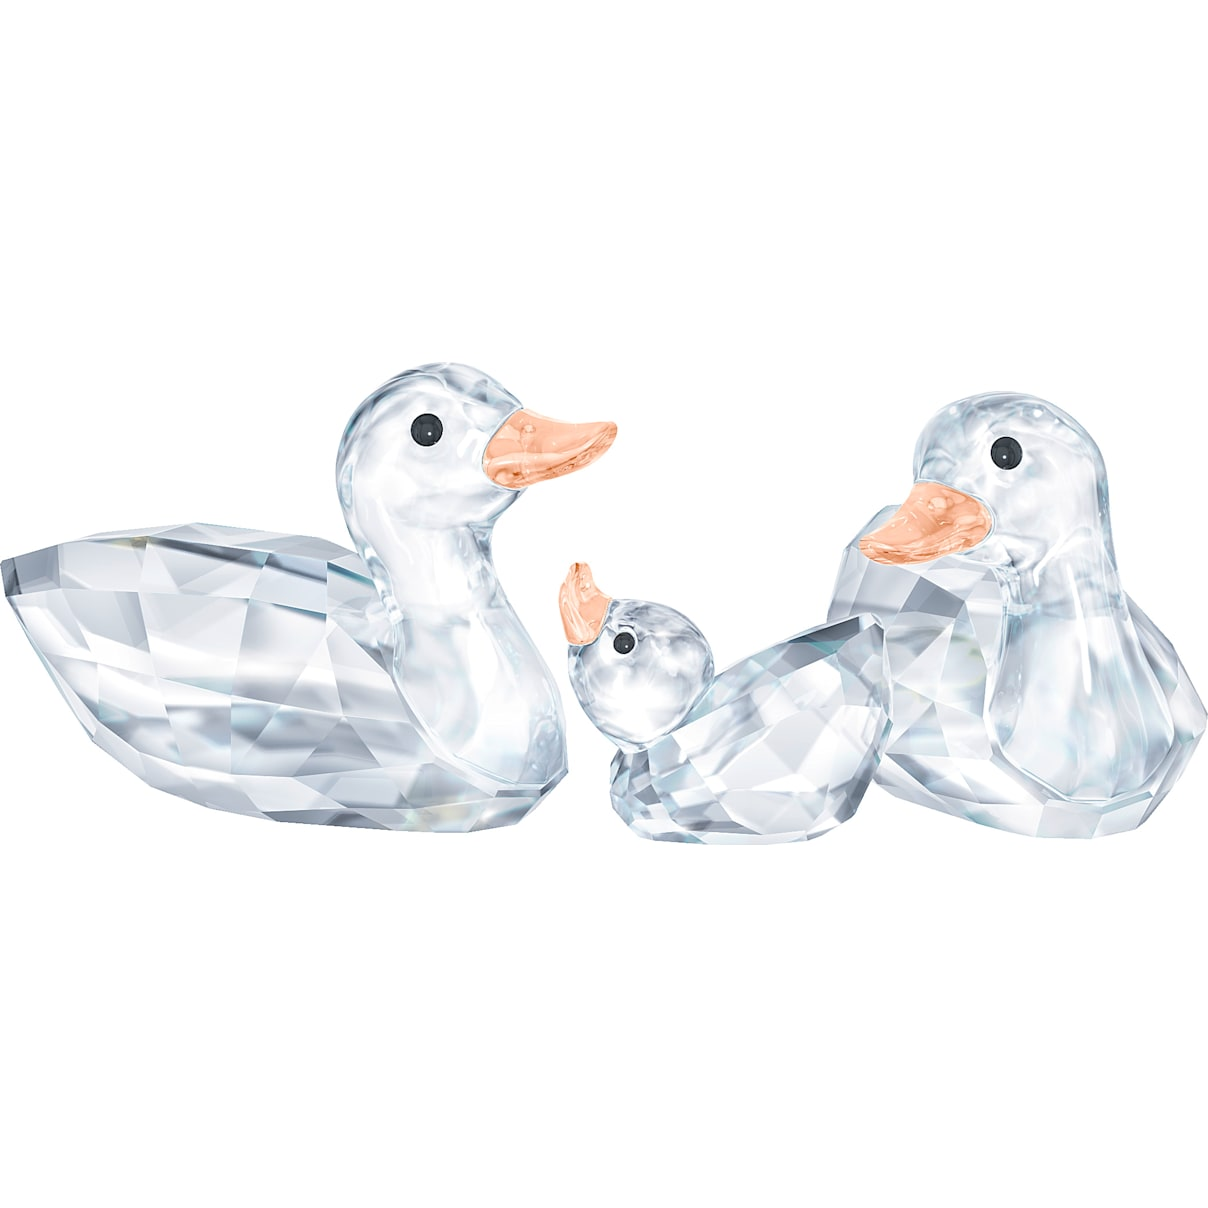 Swarovski Ducks